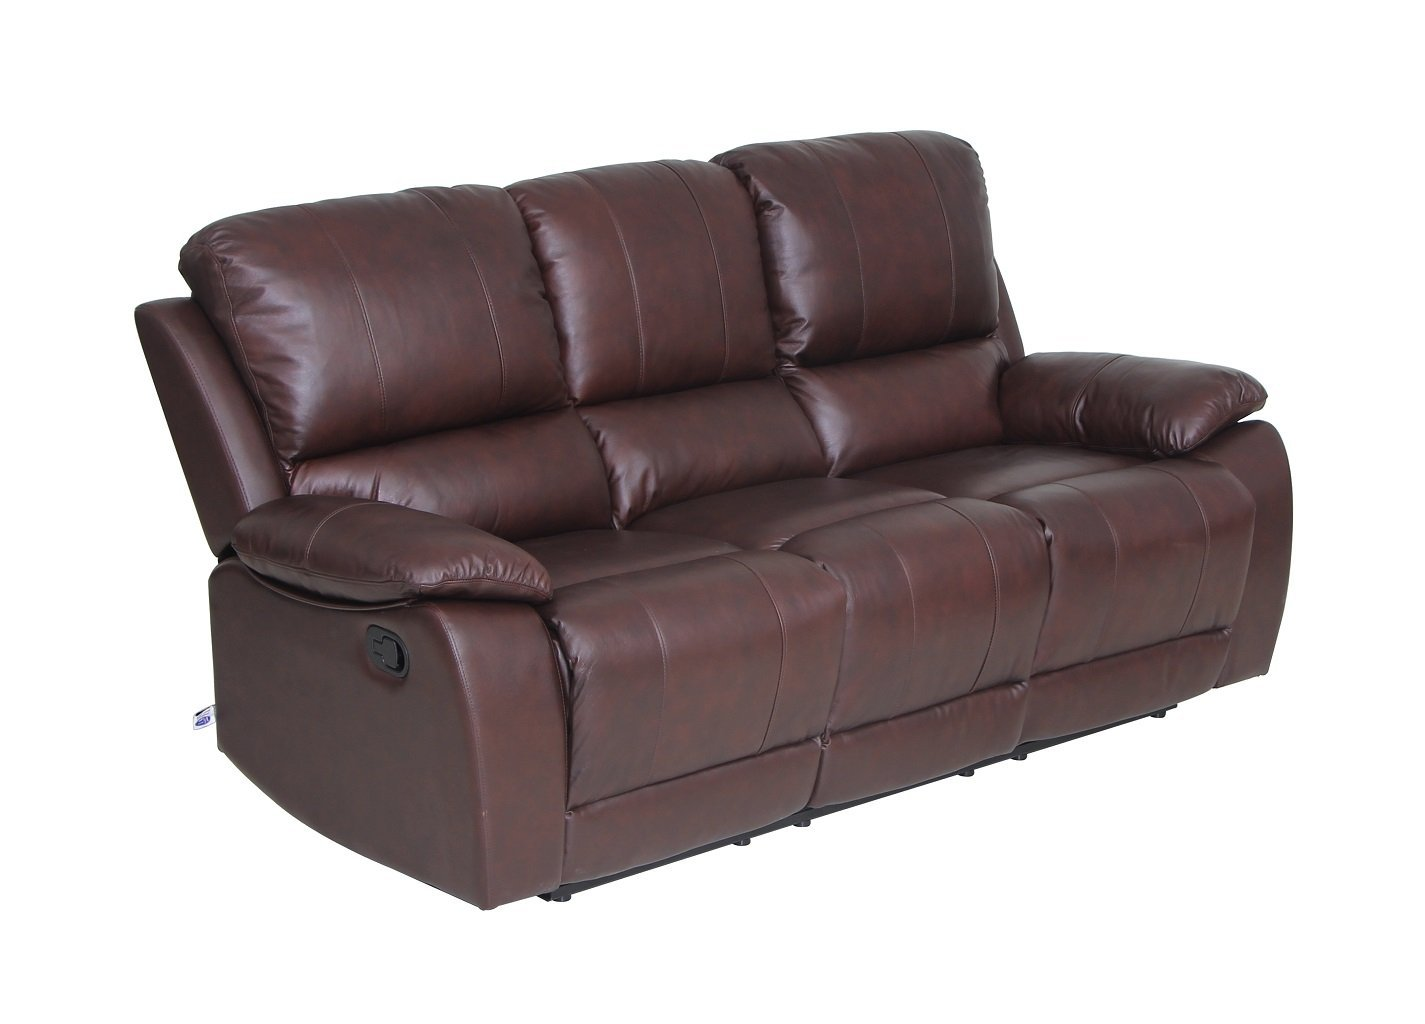 Buying The Right Home Leather Furniture Cool Ideas For